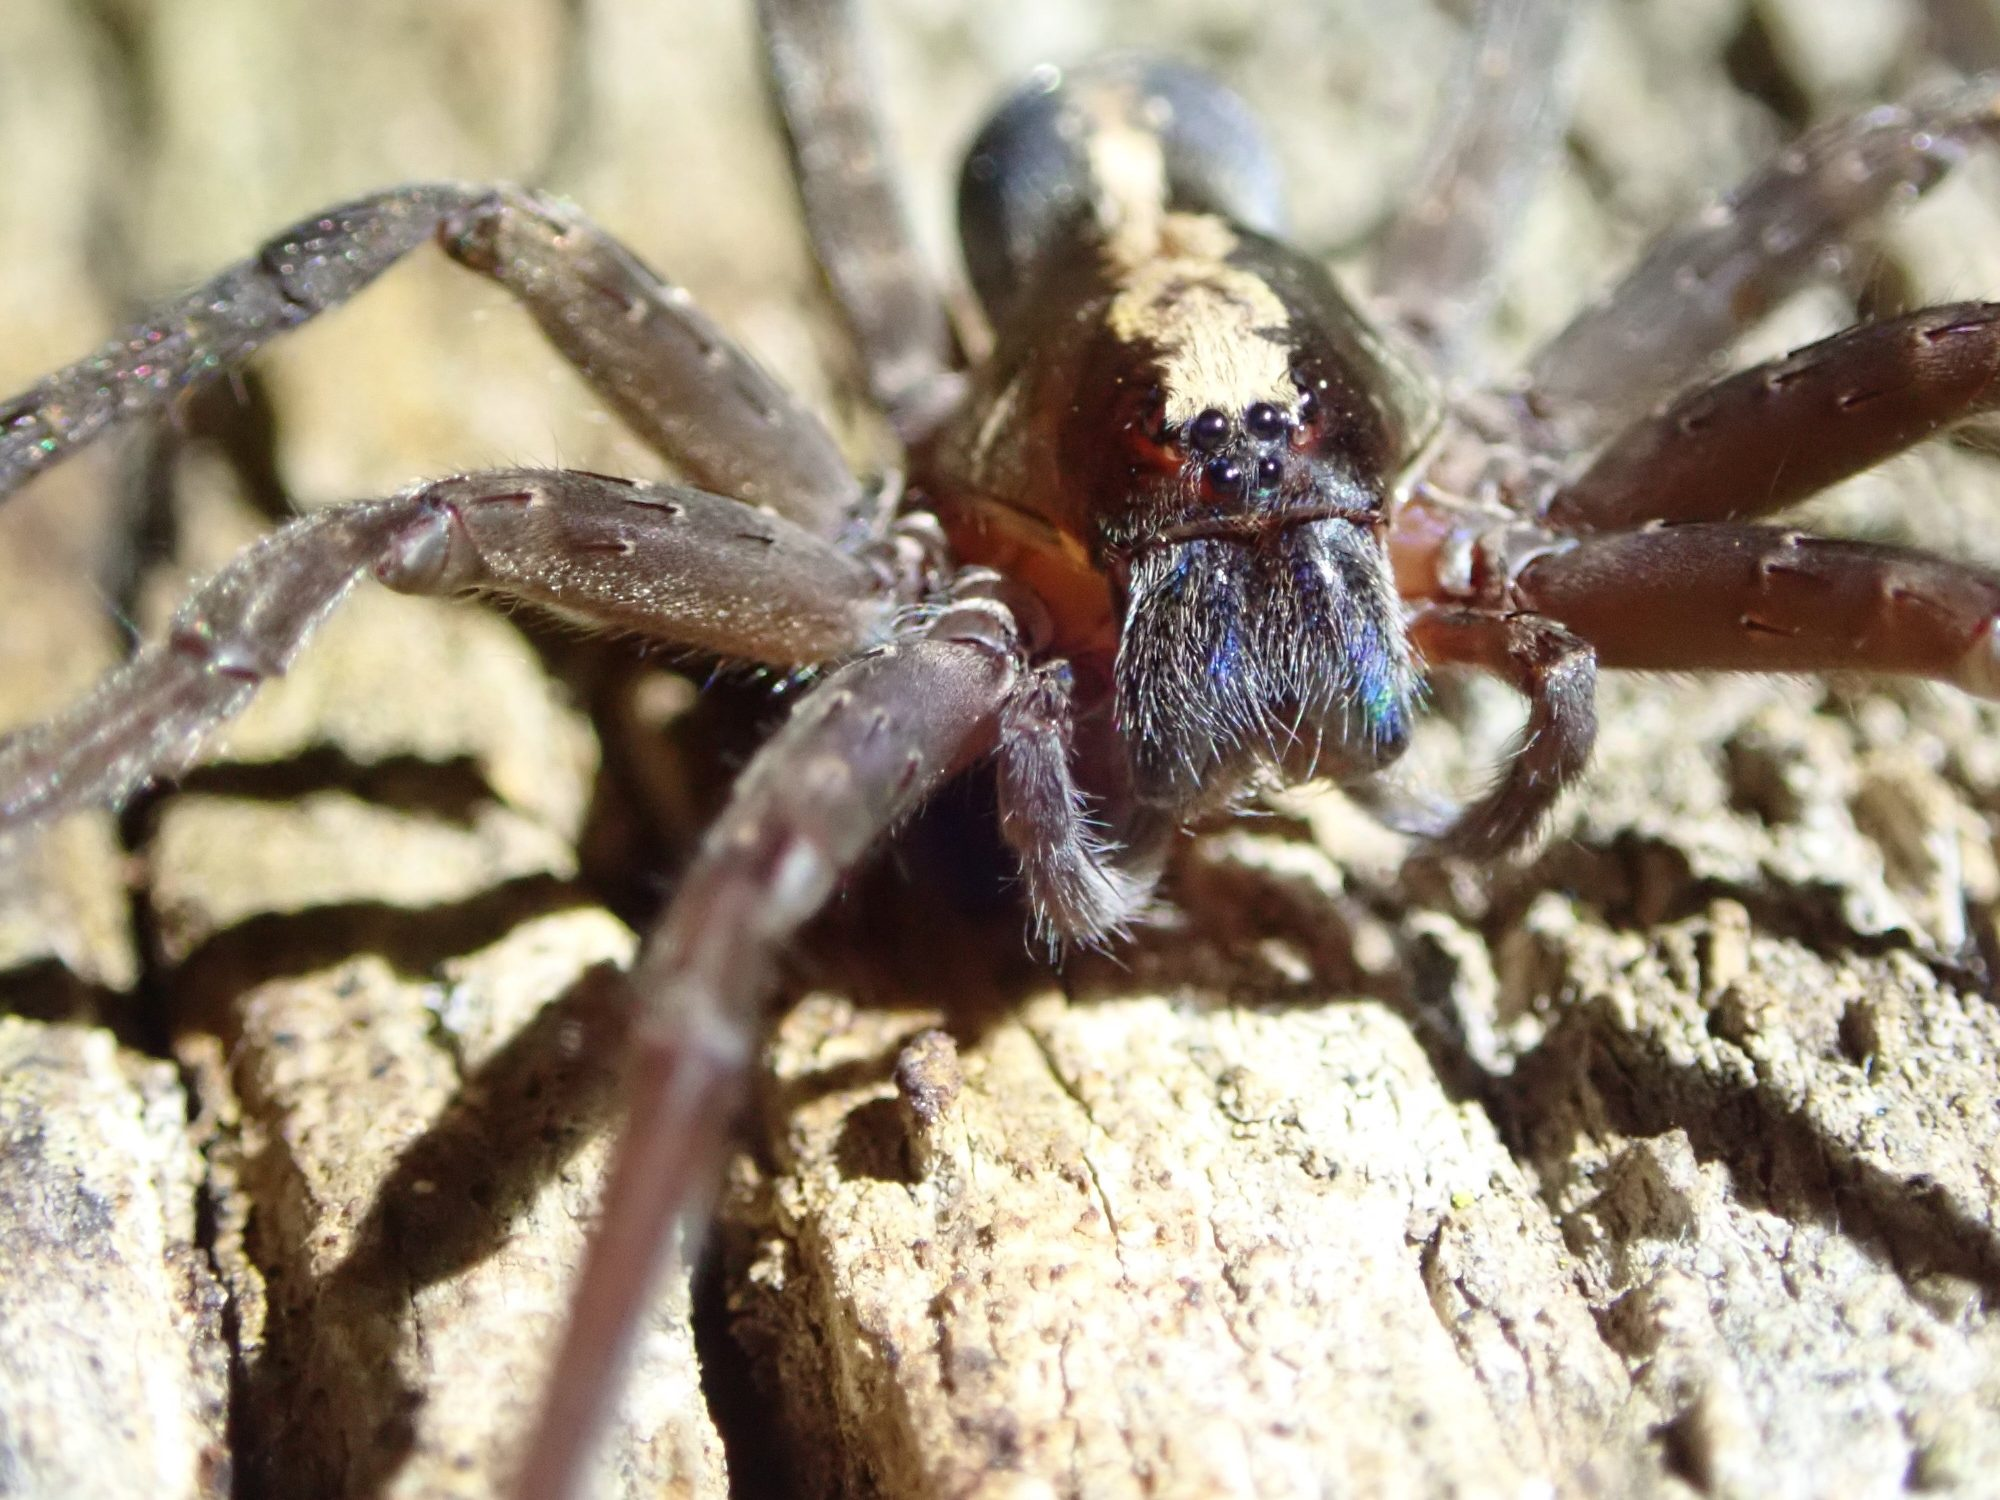 Tropical wandering spider face